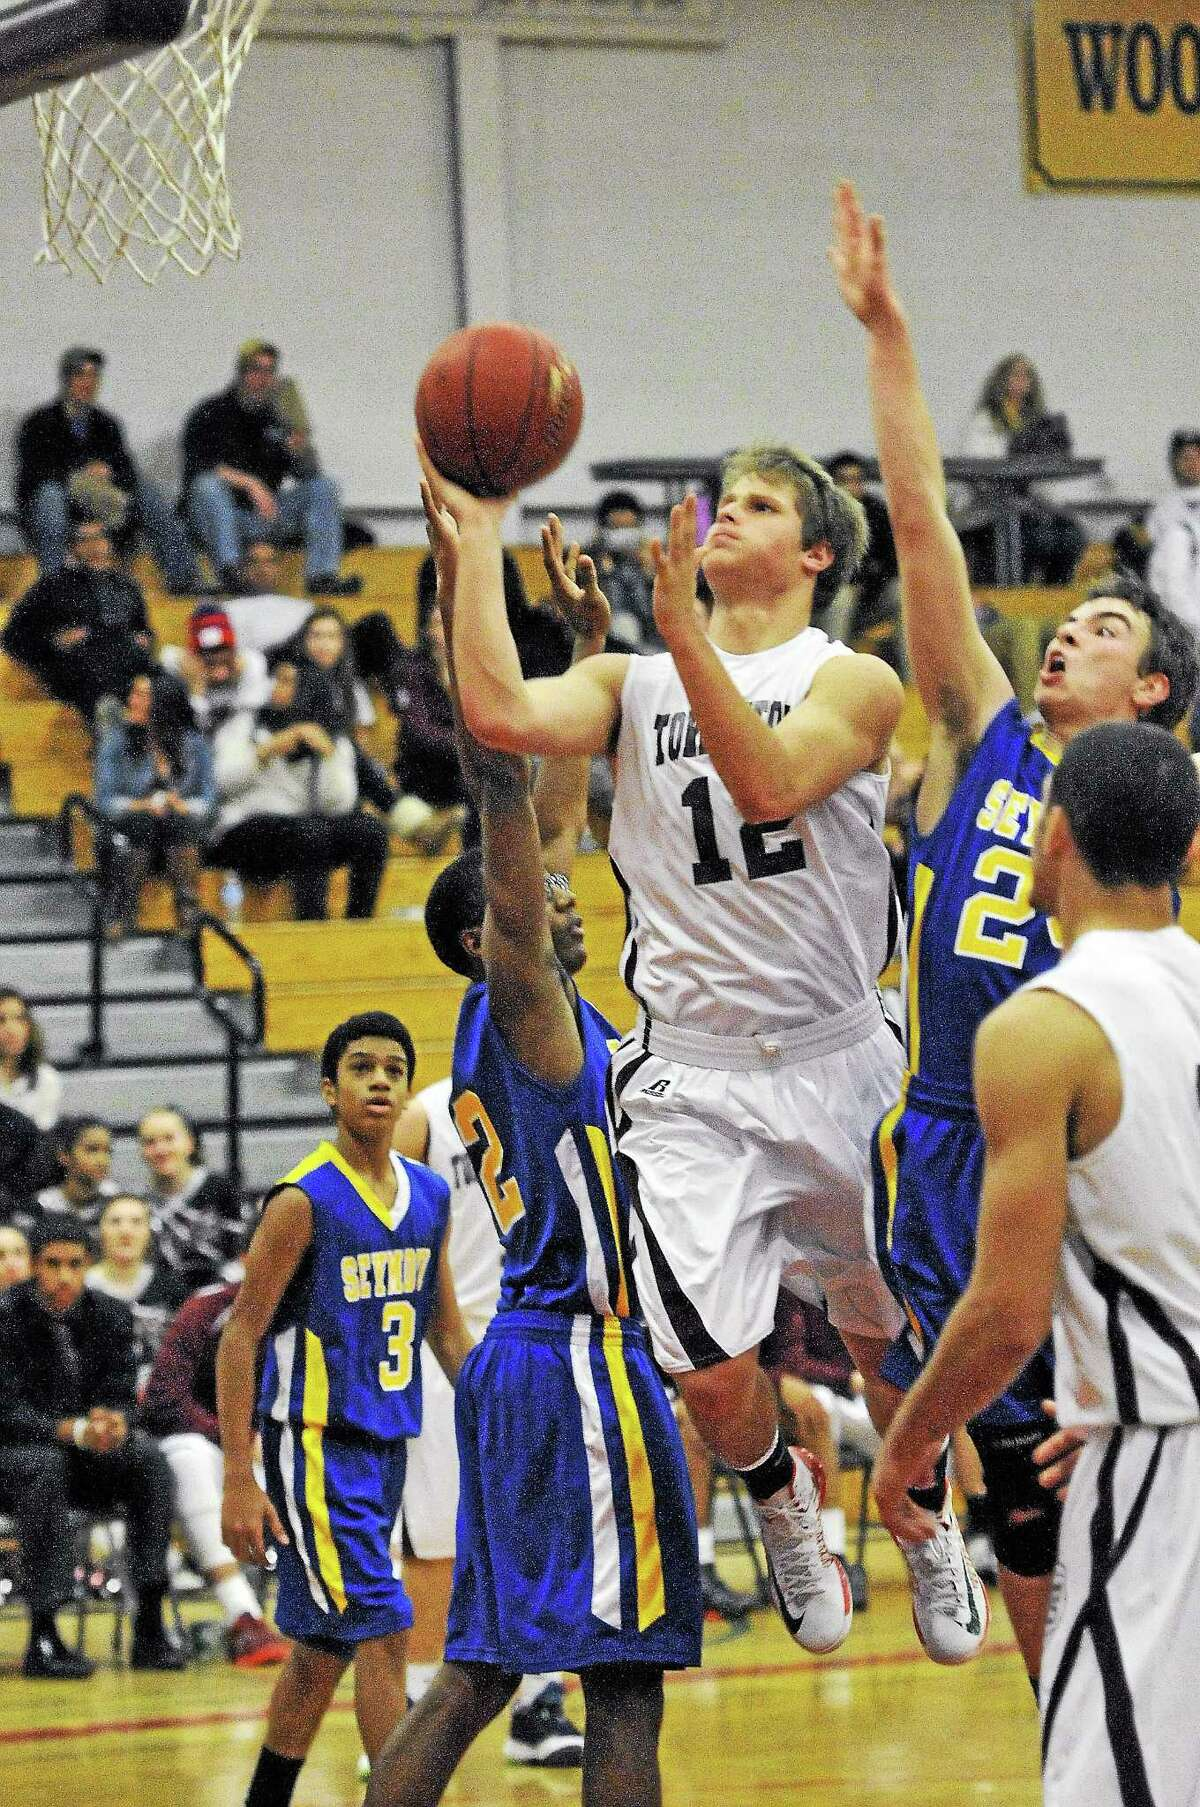 Torrington's Mitch Zagrodnik was also apart of the boys basketball where he averaged 11.5 points-per-game along with 6.7 rebounds a game.